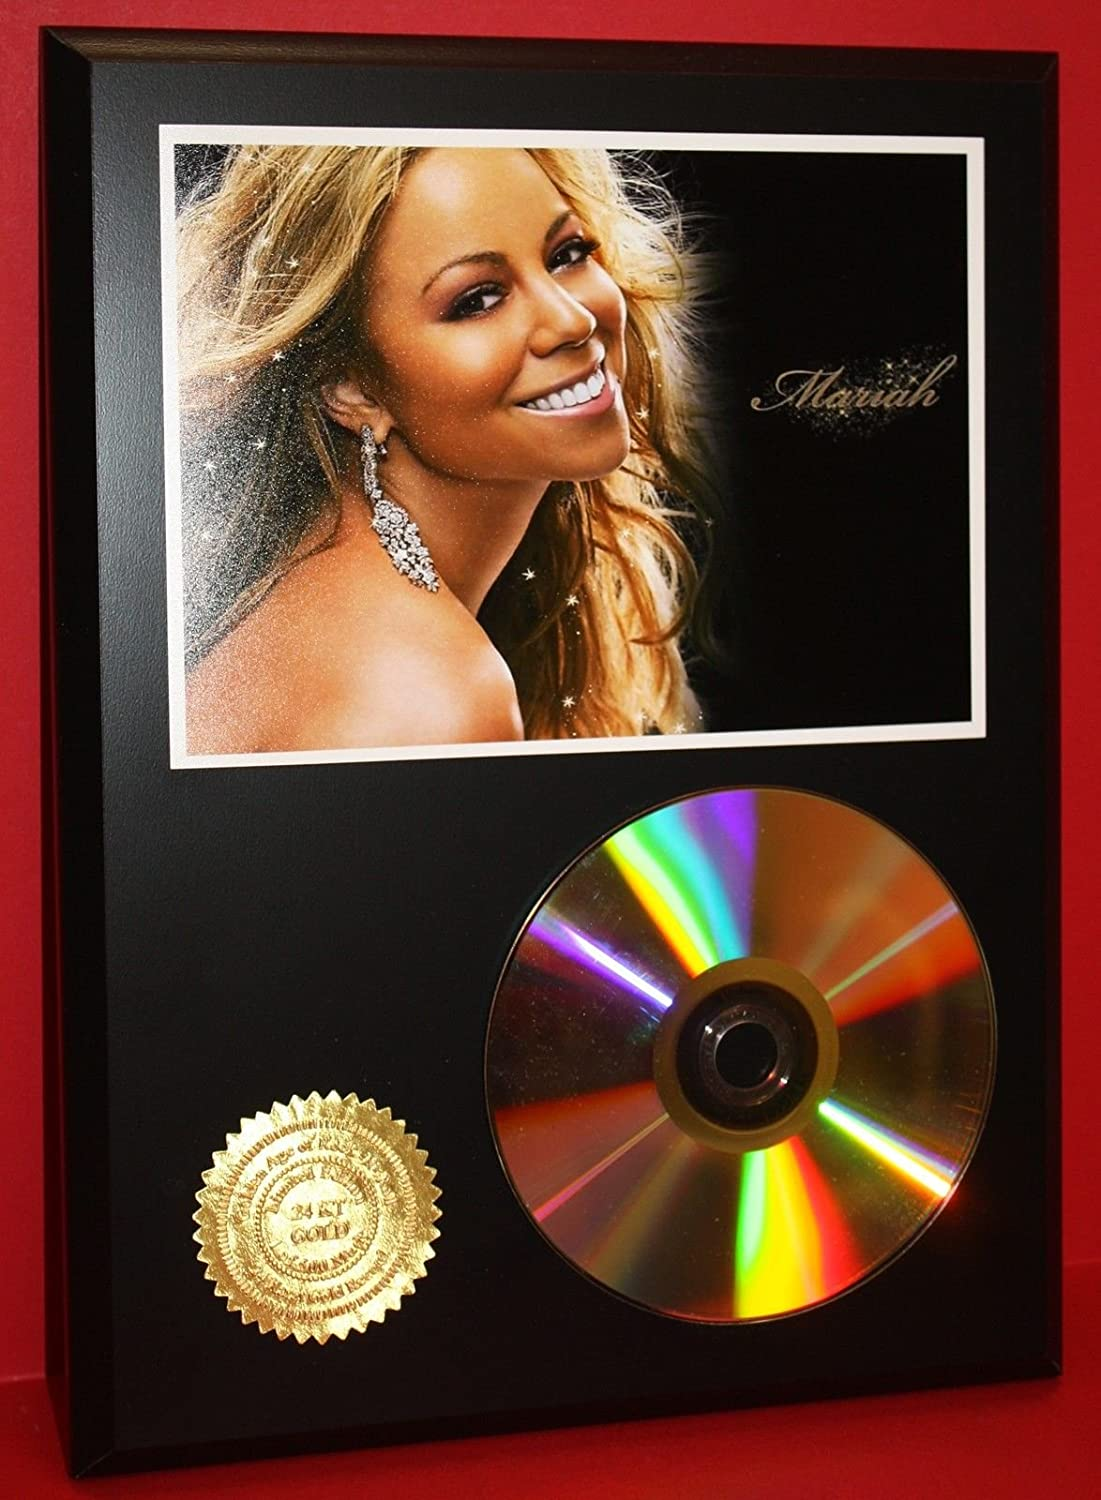 Mariah Carey 24KT Gold Cd/Disc Collectible Rare Award Quality Plaque Gift